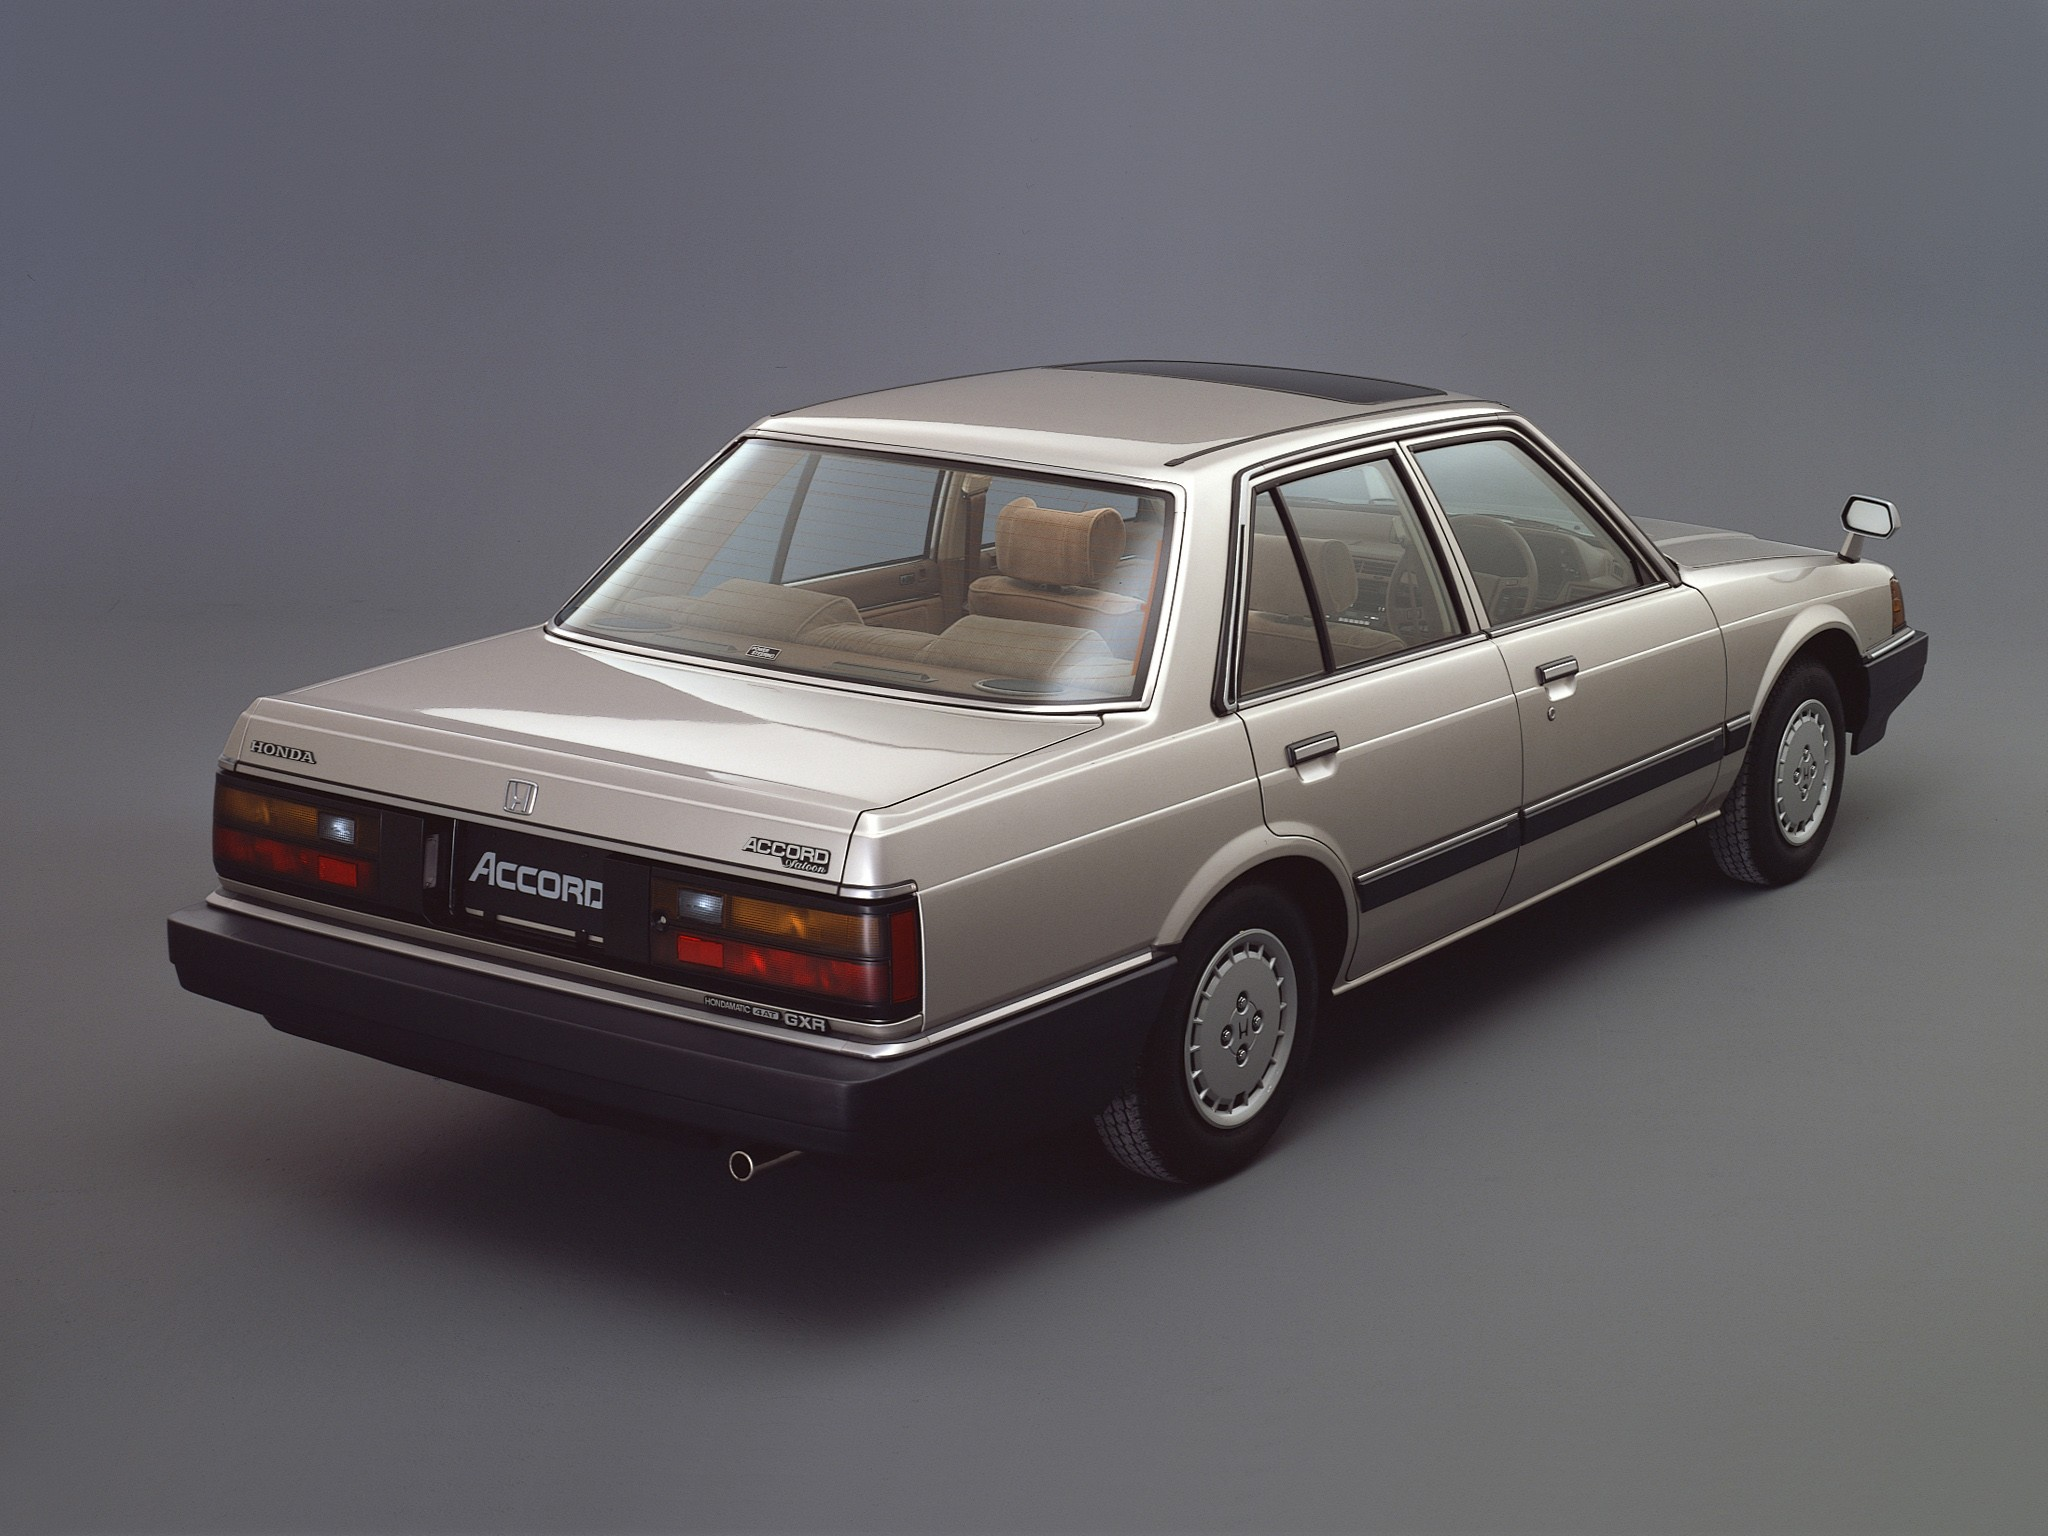 1985 Honda Accord >> HONDA Accord 4 Doors - 1981, 1982, 1983, 1984, 1985 - autoevolution